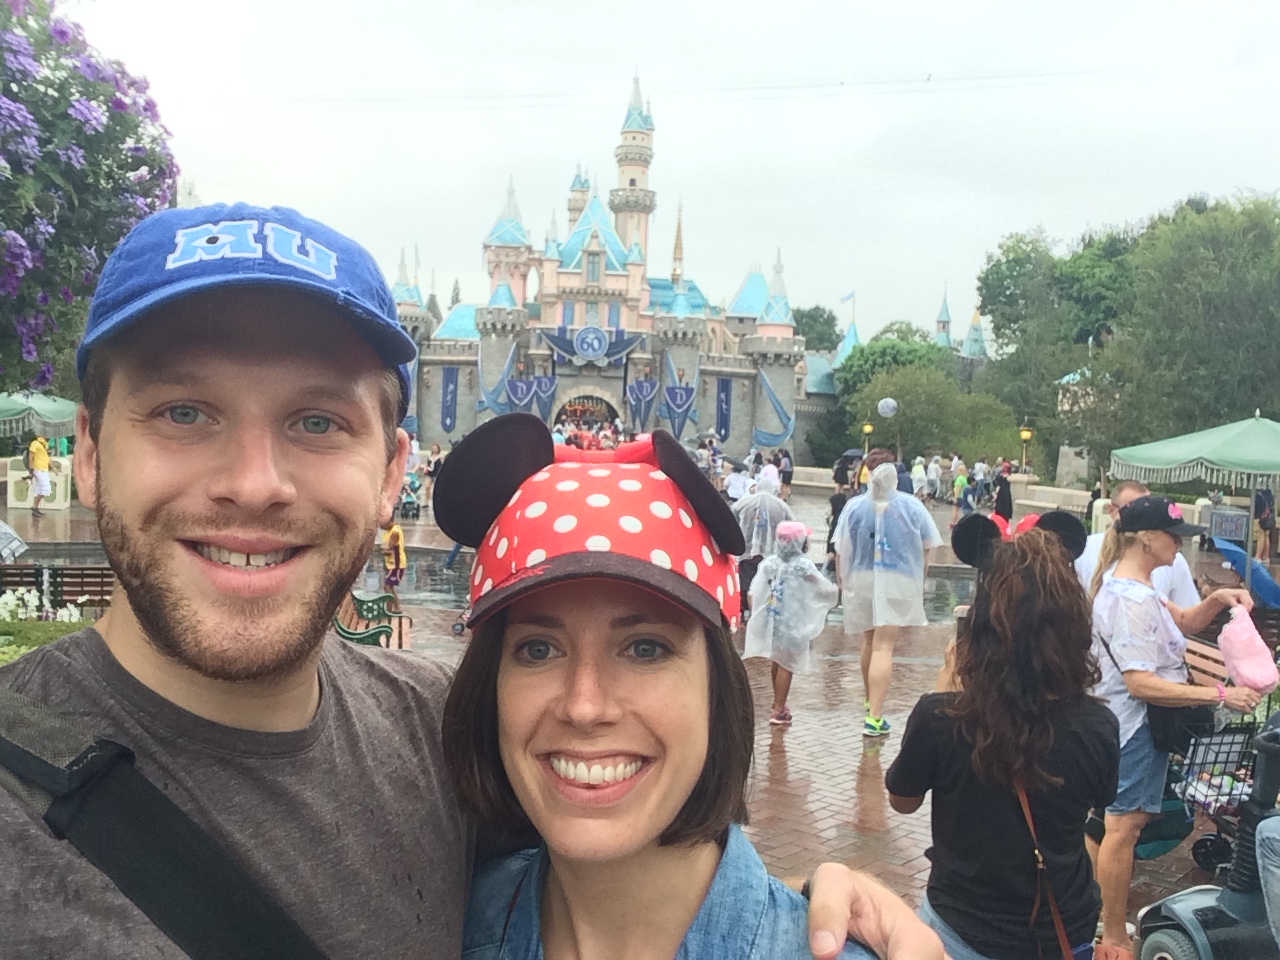 Jonathan and Sarah at Disneyland